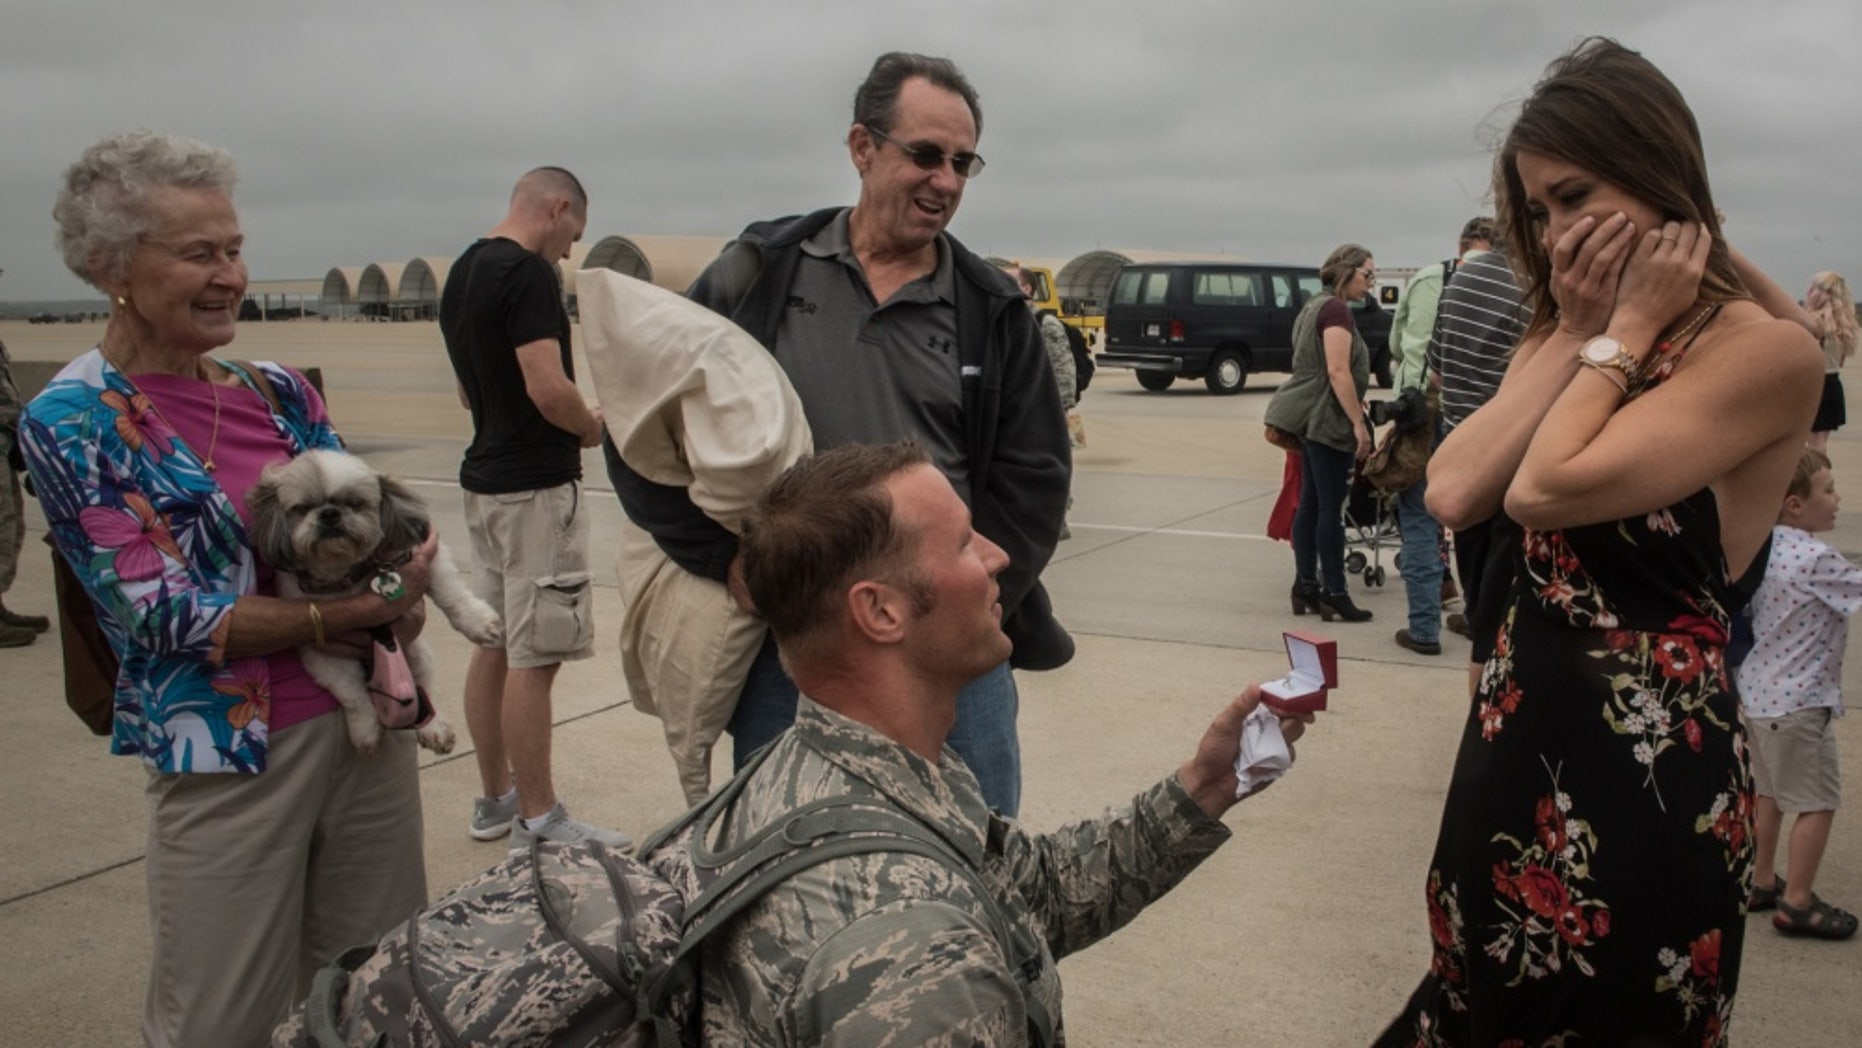 Virginia Air National Guard Staff Sgt. Jeff Greenquist (left) returned from a six-month deployment to the Middle East and asked girlfriend, Ashley Branham, to marry him. (U.S. Air Force photo by Staff Sgt. Carlin Leslie)